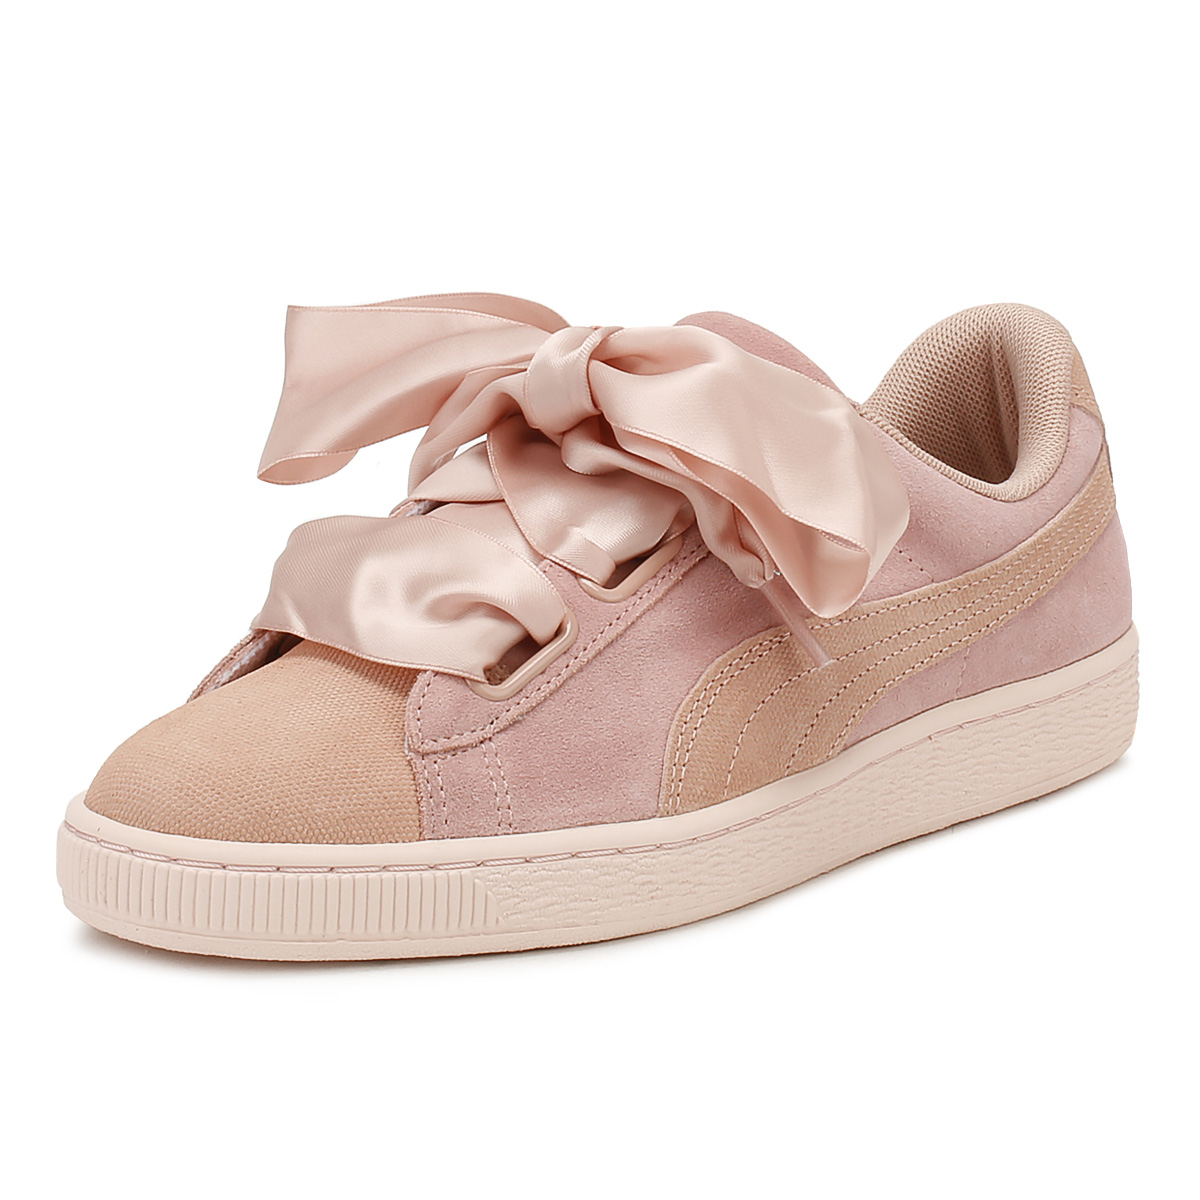 9d29933f11092c Details about PUMA Womens Peach   Pearl Heart Pebble Suede Trainers Lace Up  Sport Casual Shoes